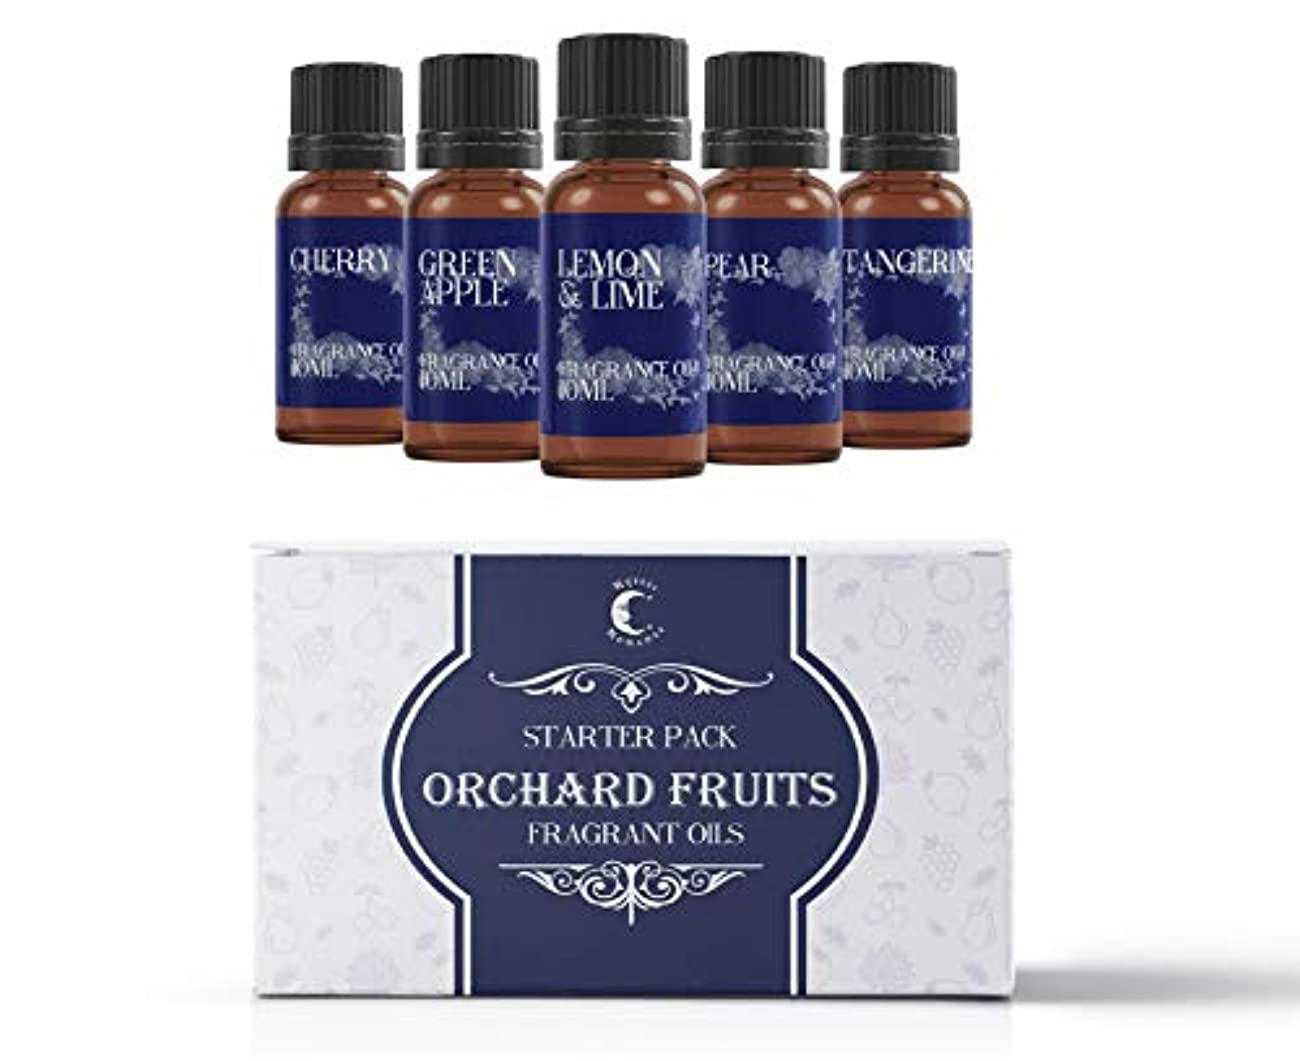 Mystic Moments | Fragrant Oil Starter Pack - Orchard Fruits - 5 x 10ml